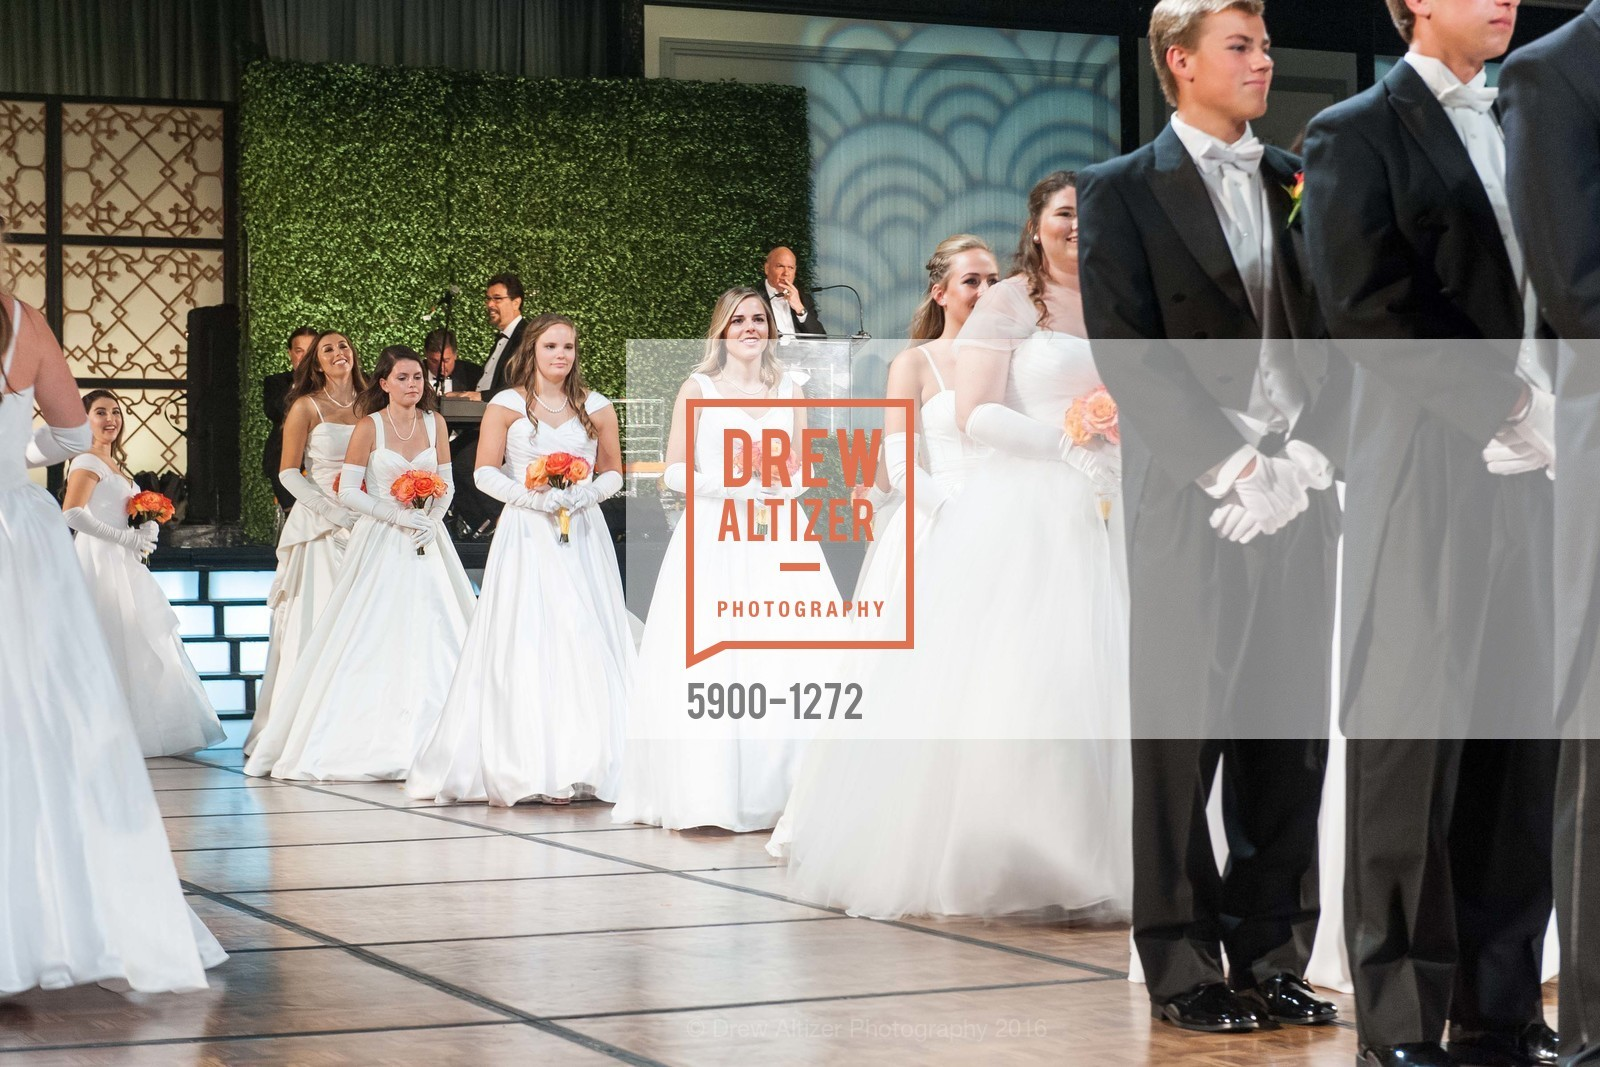 Cotillion, Photo #5900-1272